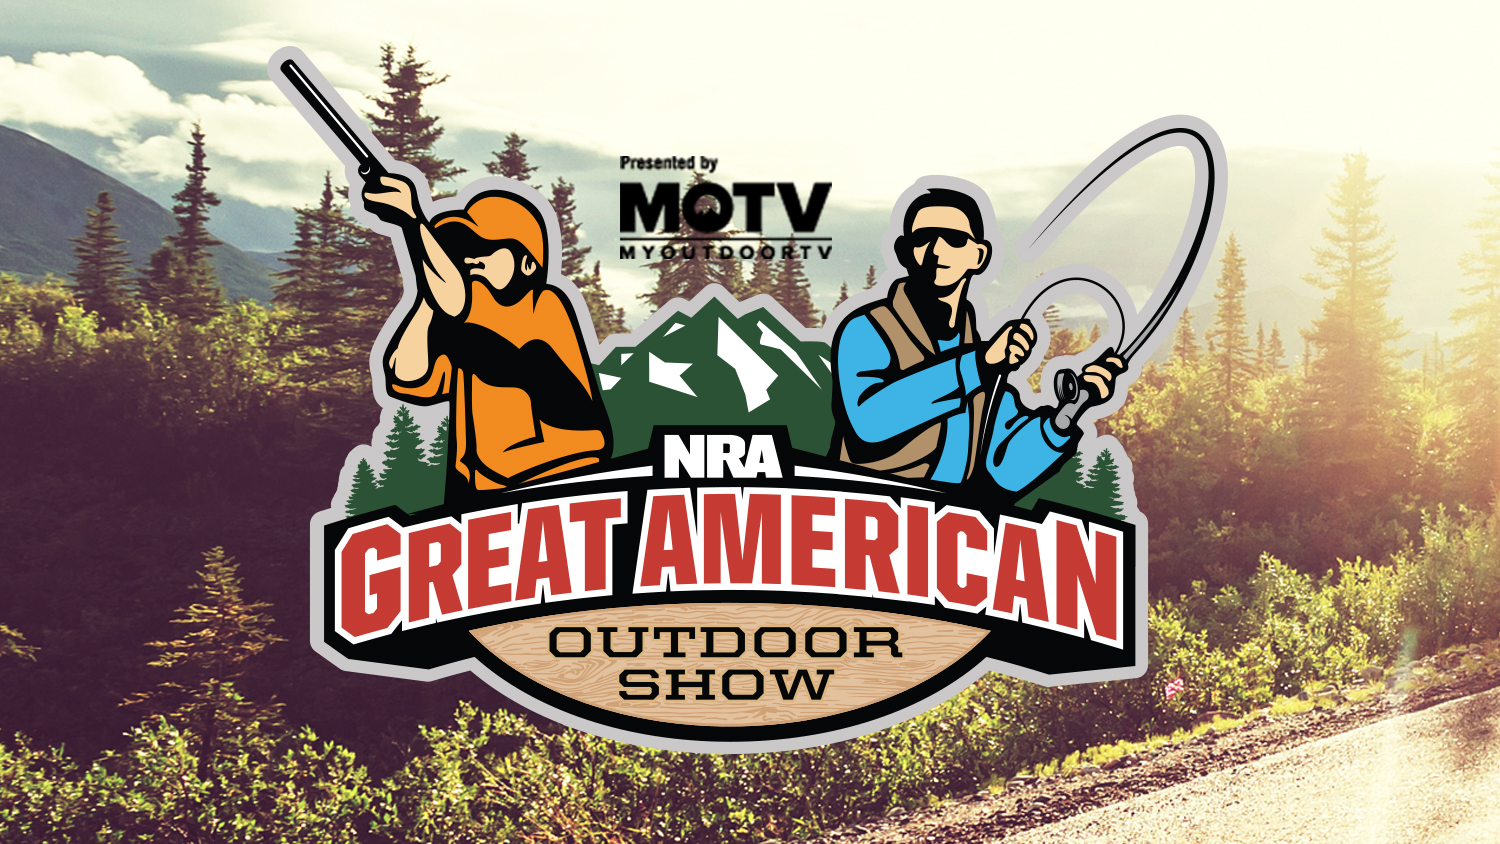 Are You Ready for This Year's Great American Outdoor Show?